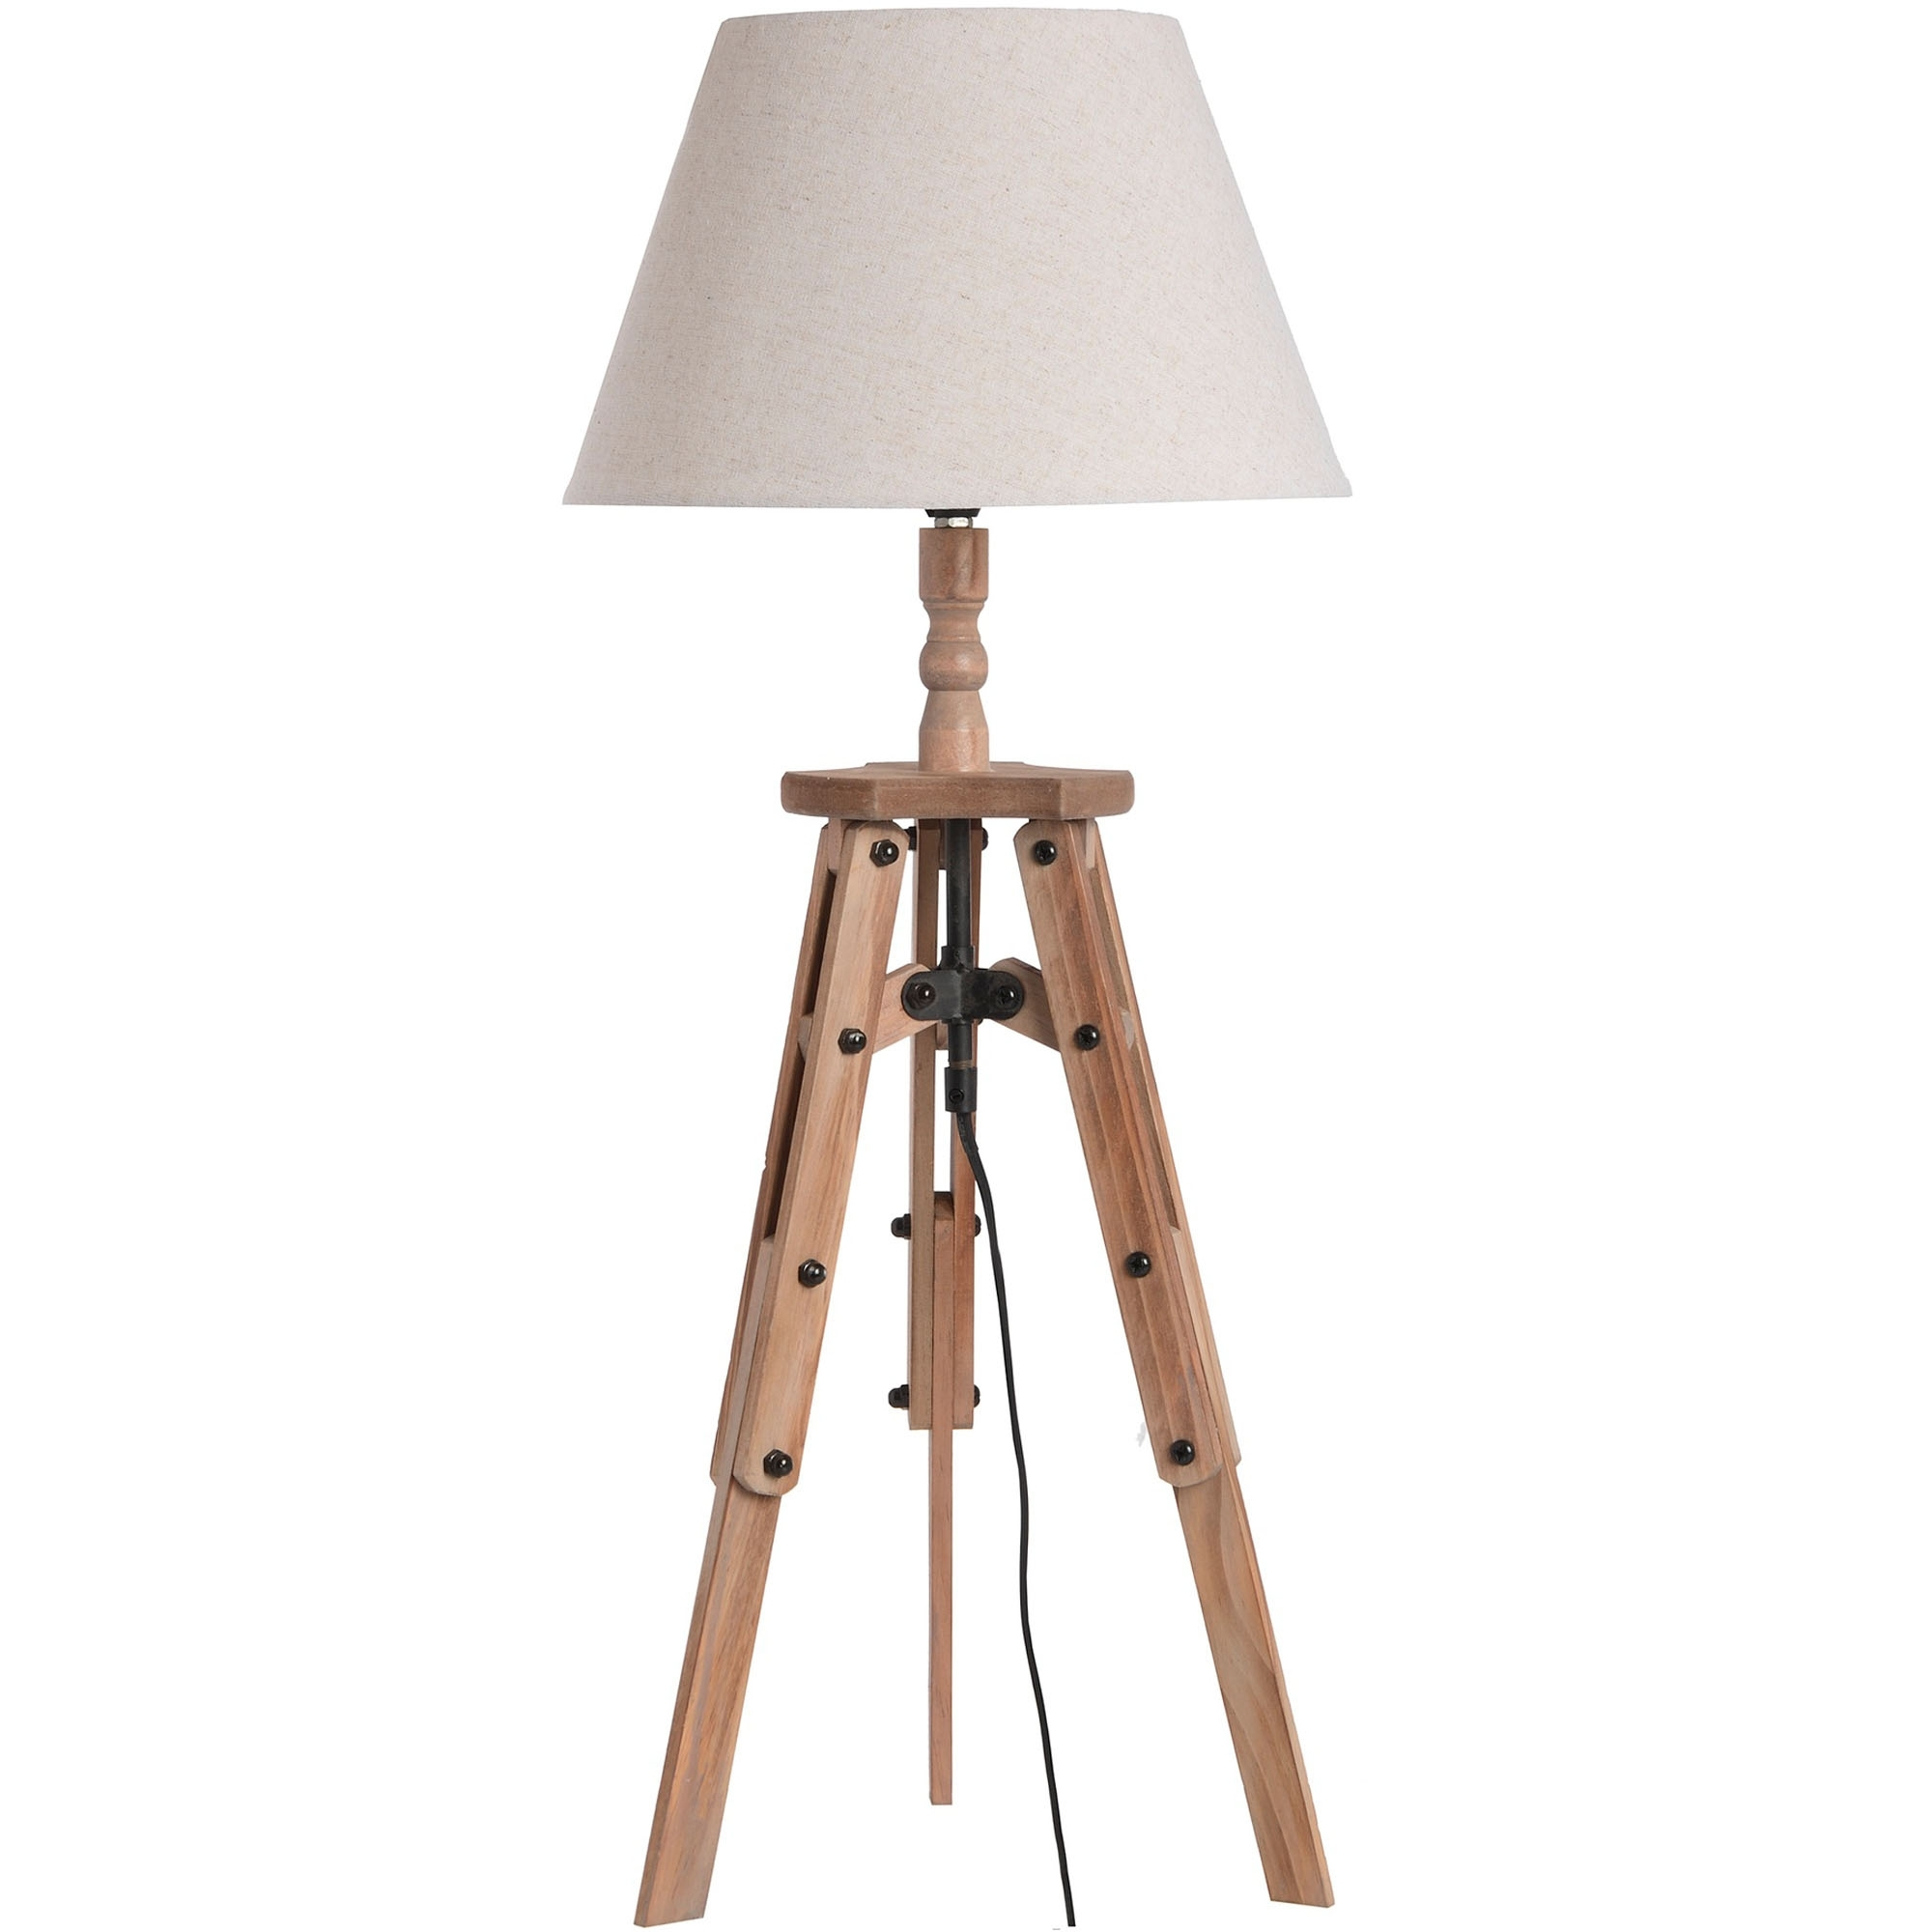 Wooden tripod table lamp lamp homesdirect365 wooden tripod table lamp aloadofball Image collections